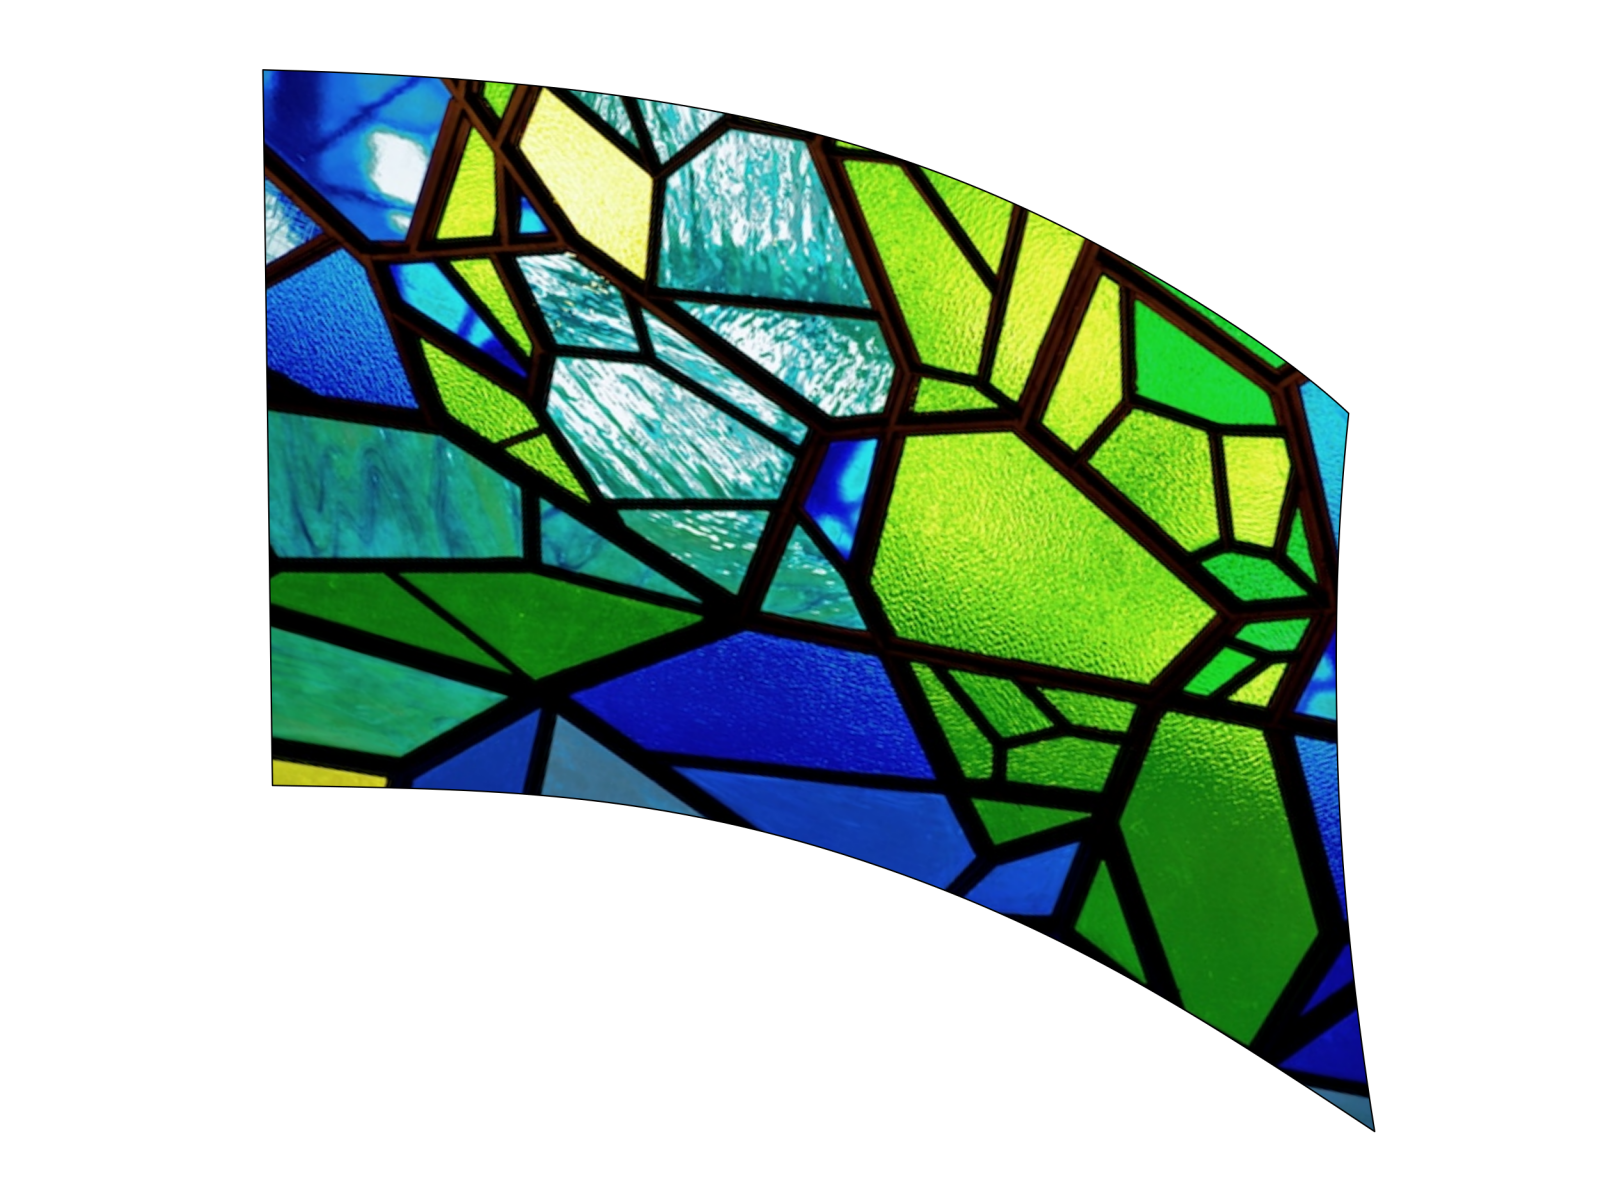 020206s - 36x54 Standard Stained Glass 4